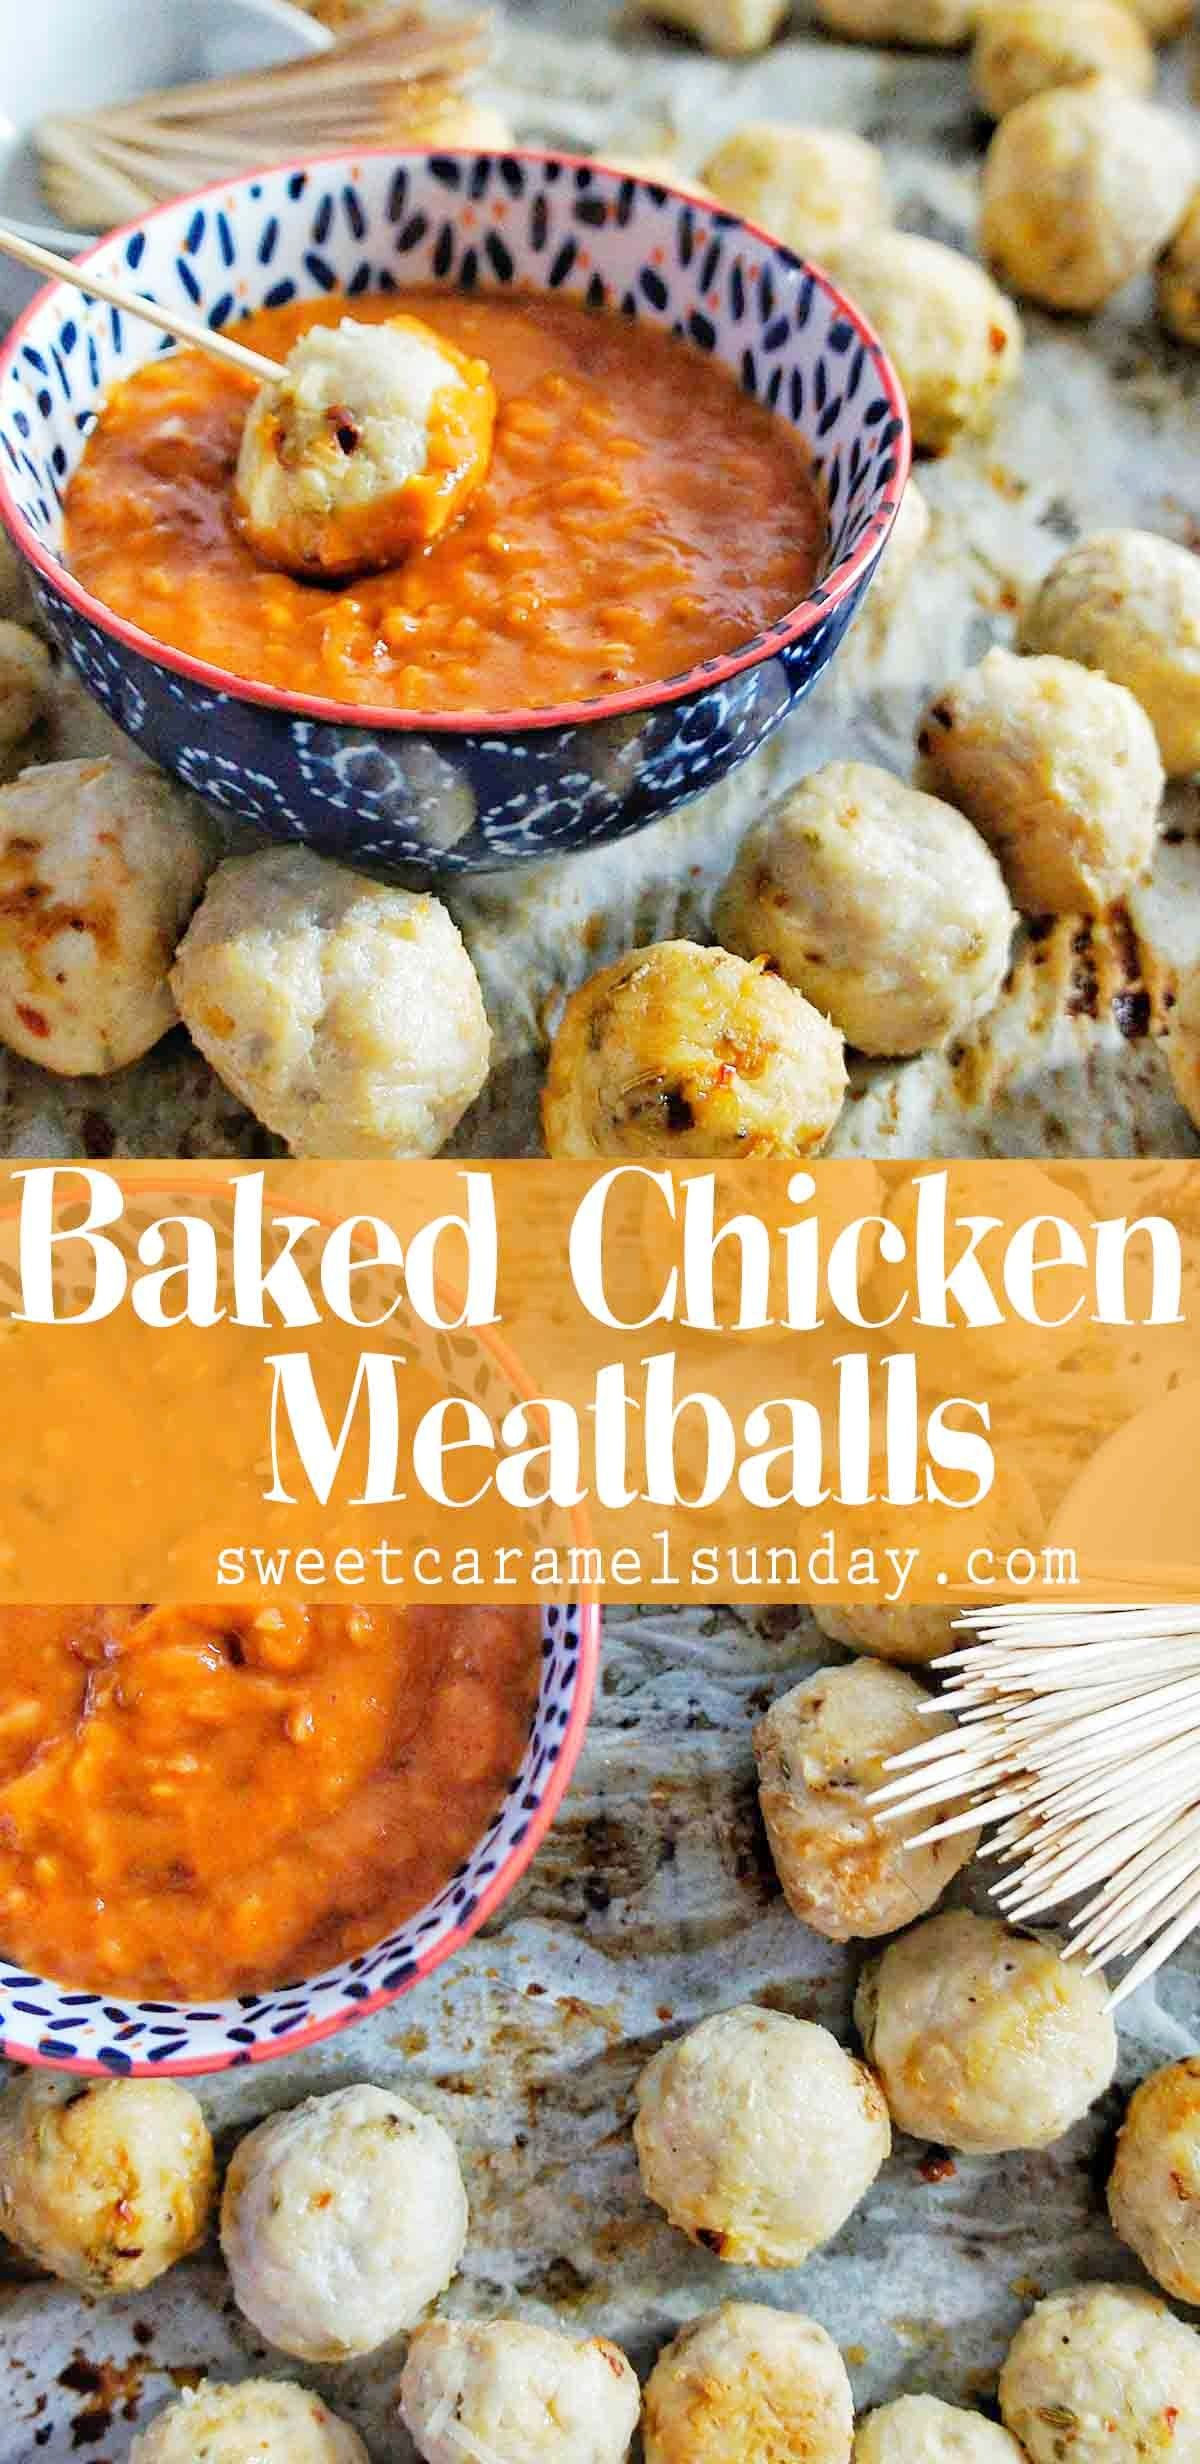 Healthy Baked Chicken Meatballs images